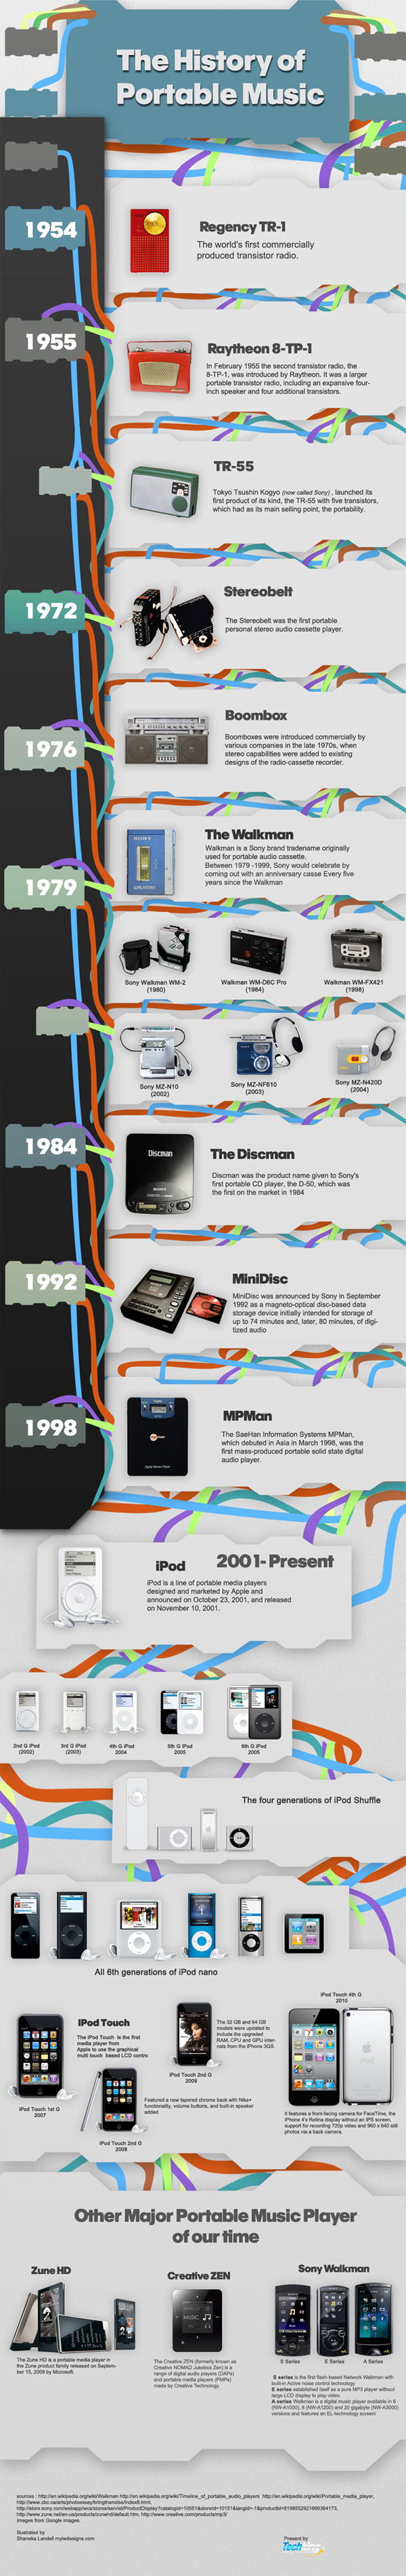 Infographic: Evolution of Portable Music